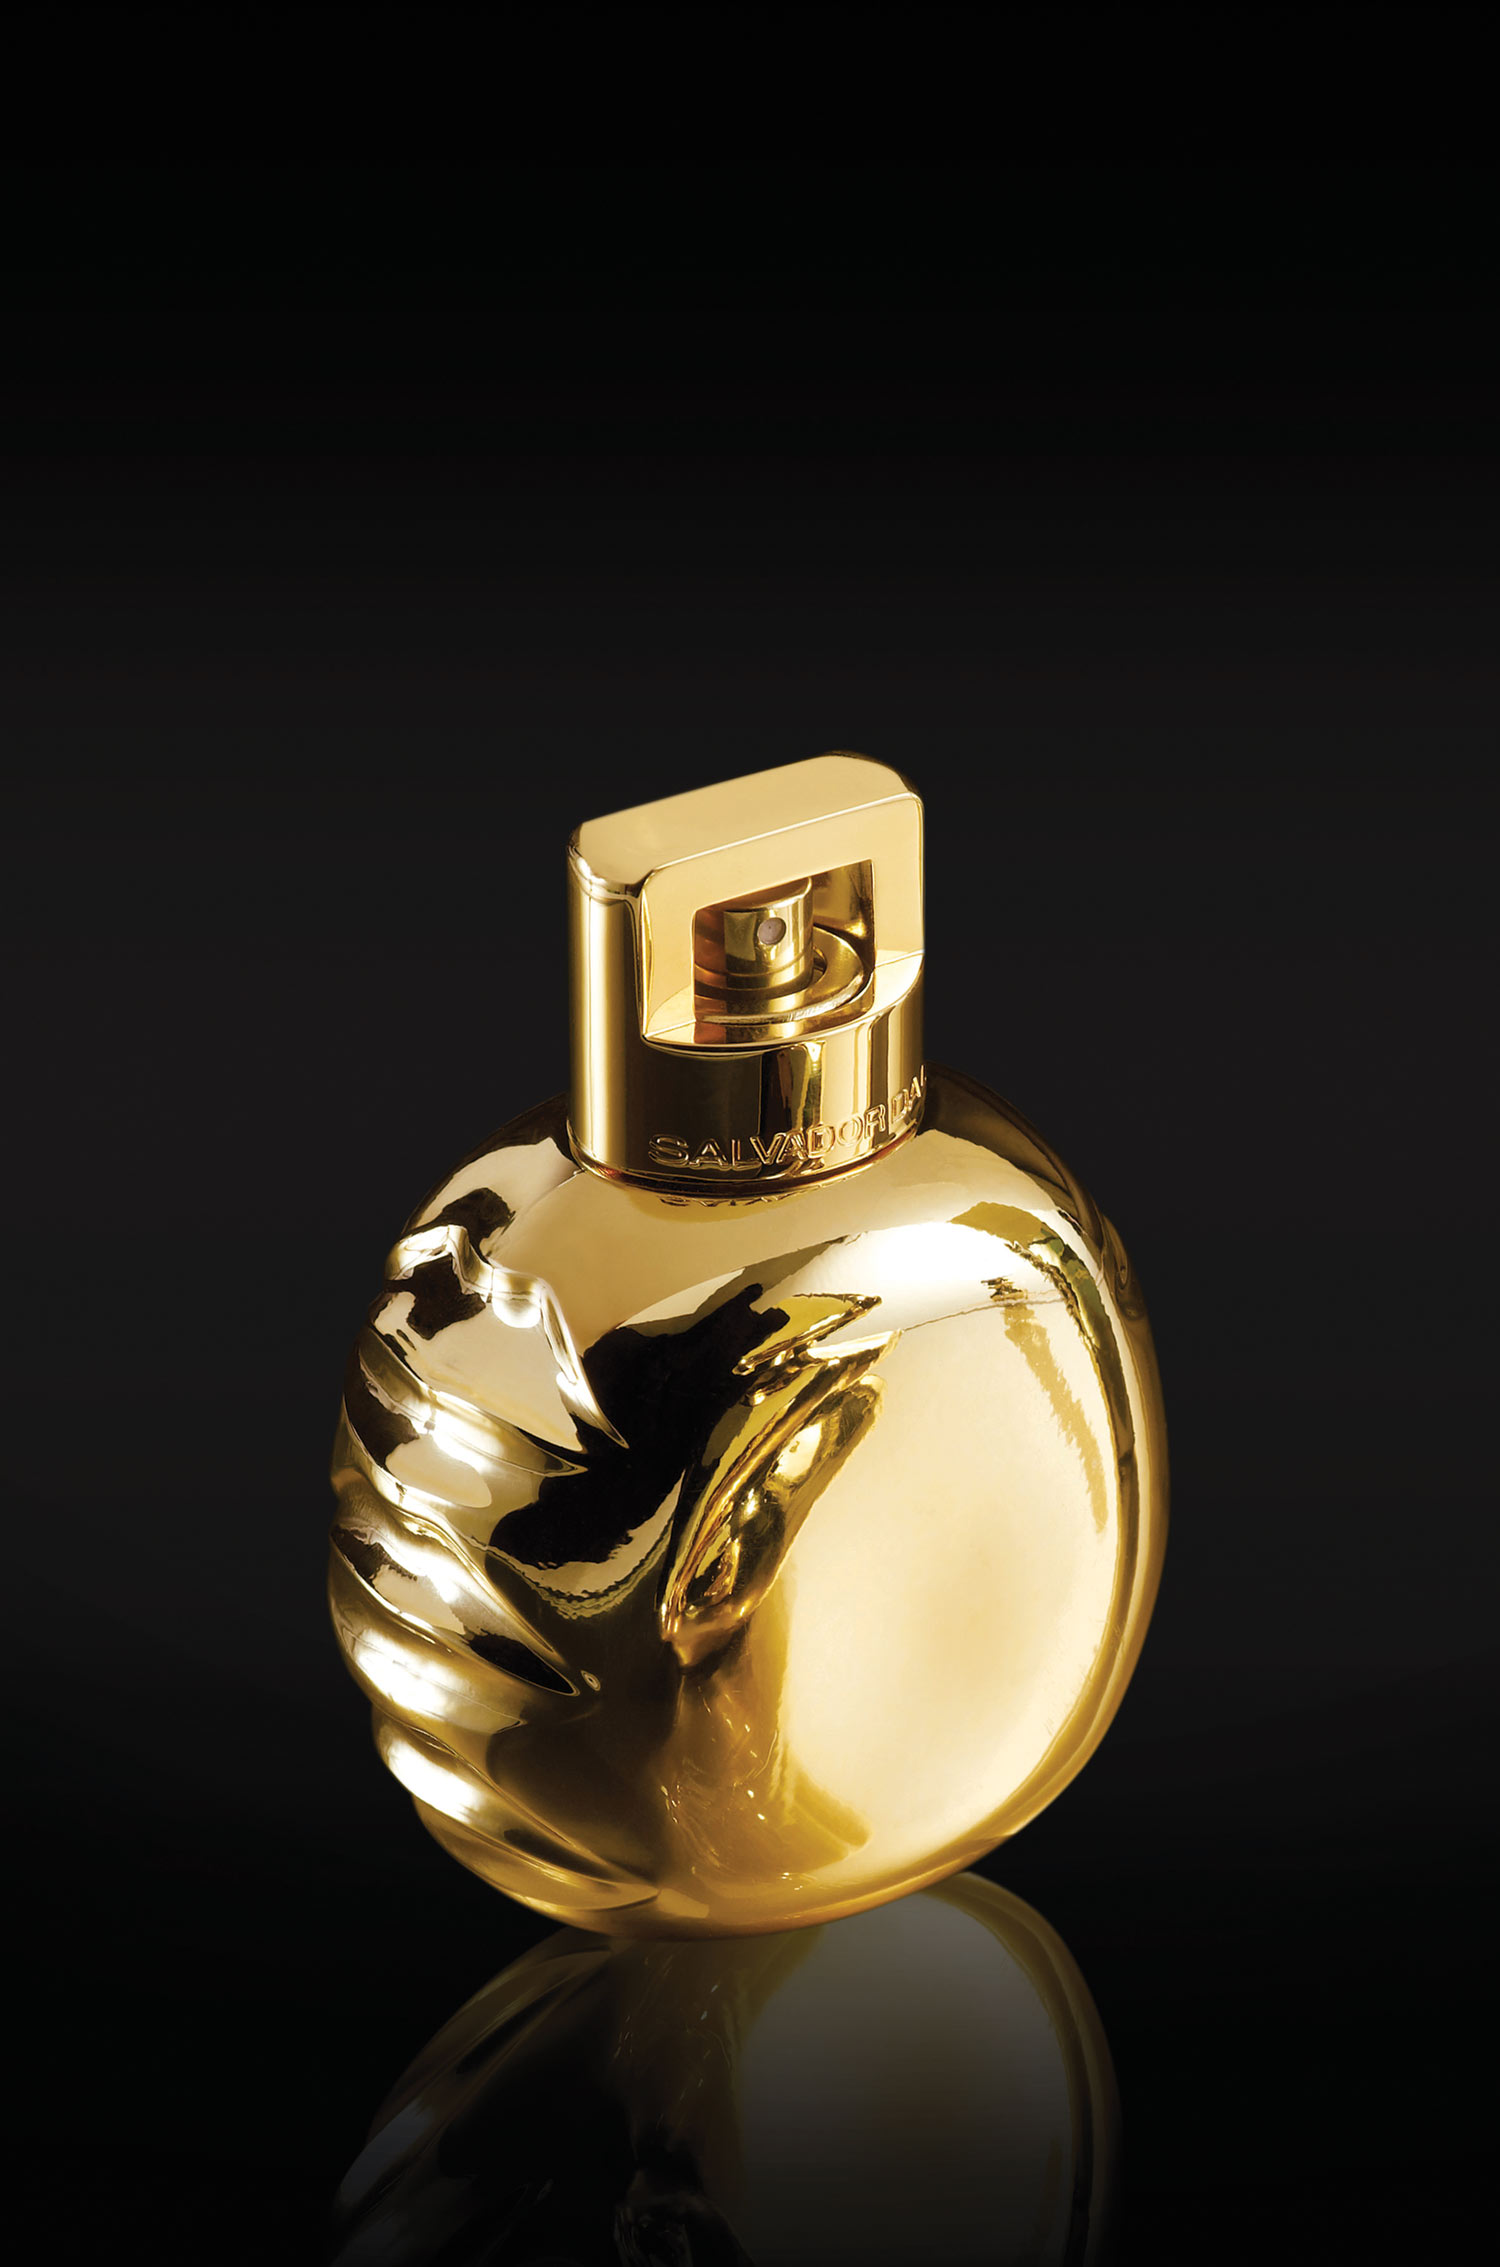 79ab163b61e Fabulous Mandawa Salvador Dali perfume - a new fragrance for women ...